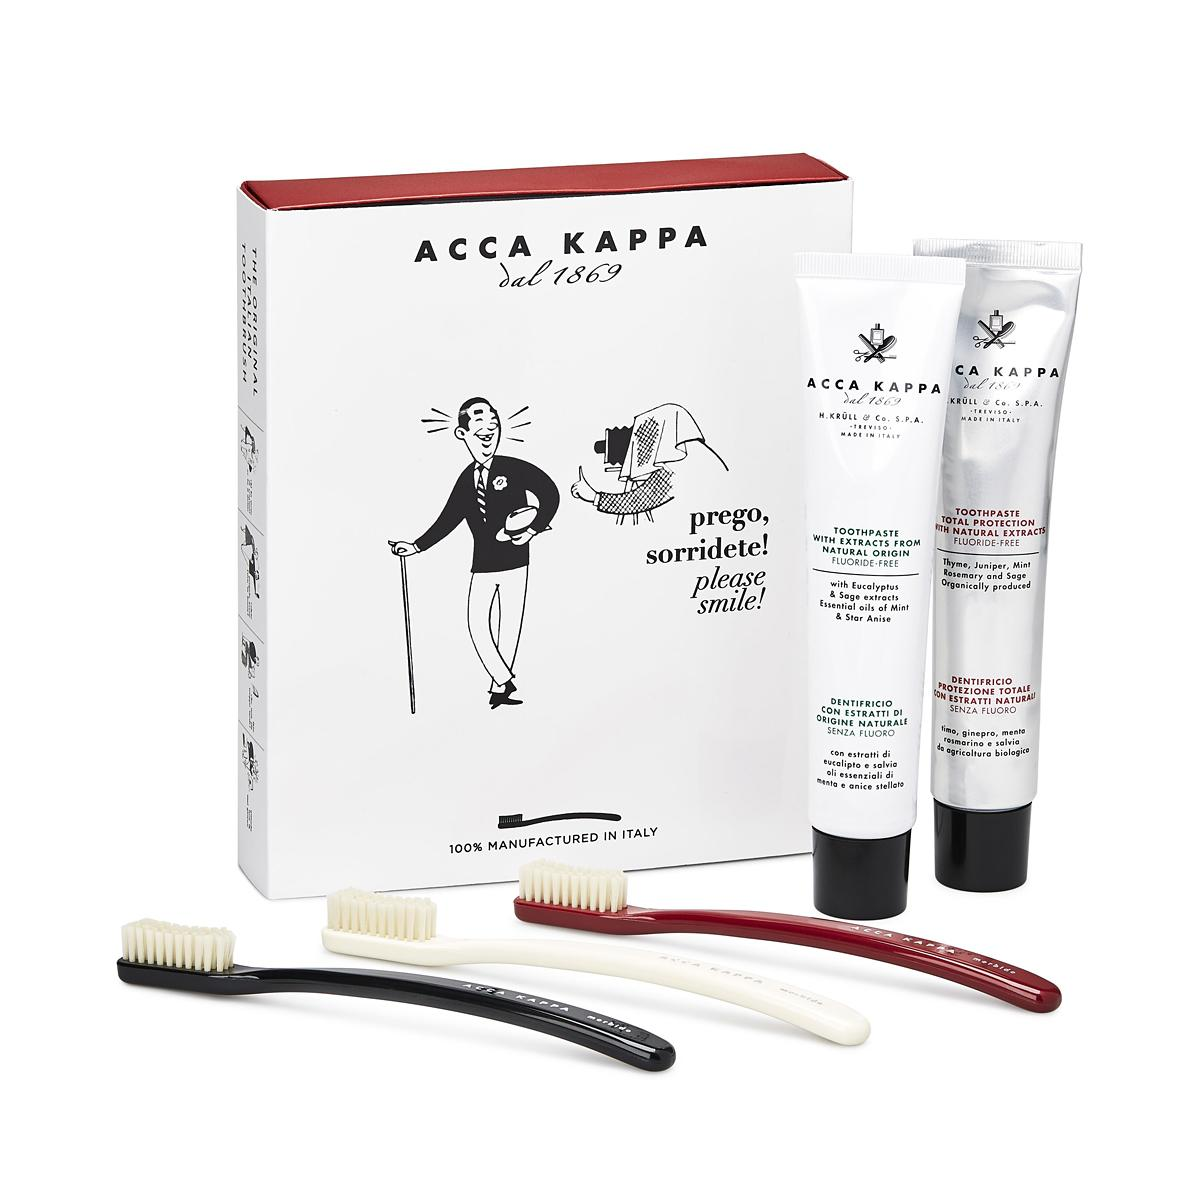 ACCA KAPPA Vintage Collection Gift Set, Total Protection Toothpaste, Natural Toothpaste, 3 Medium Nylon Toothbrushes